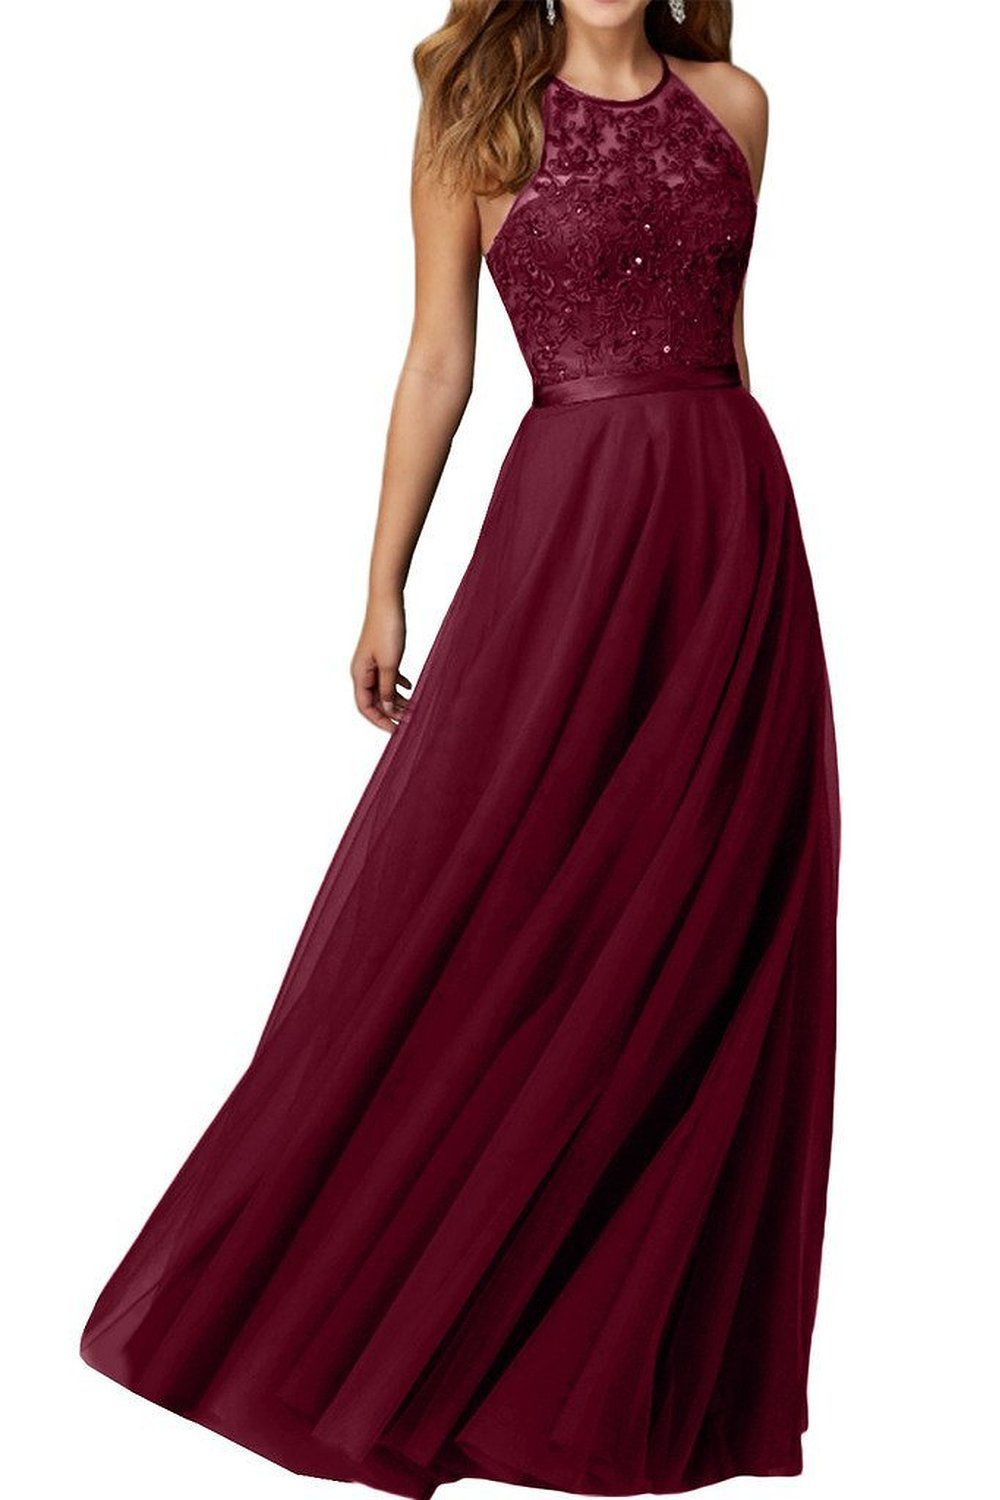 Coolste Weinrotes Abendkleid Lang Boutique Fantastisch Weinrotes Abendkleid Lang Design